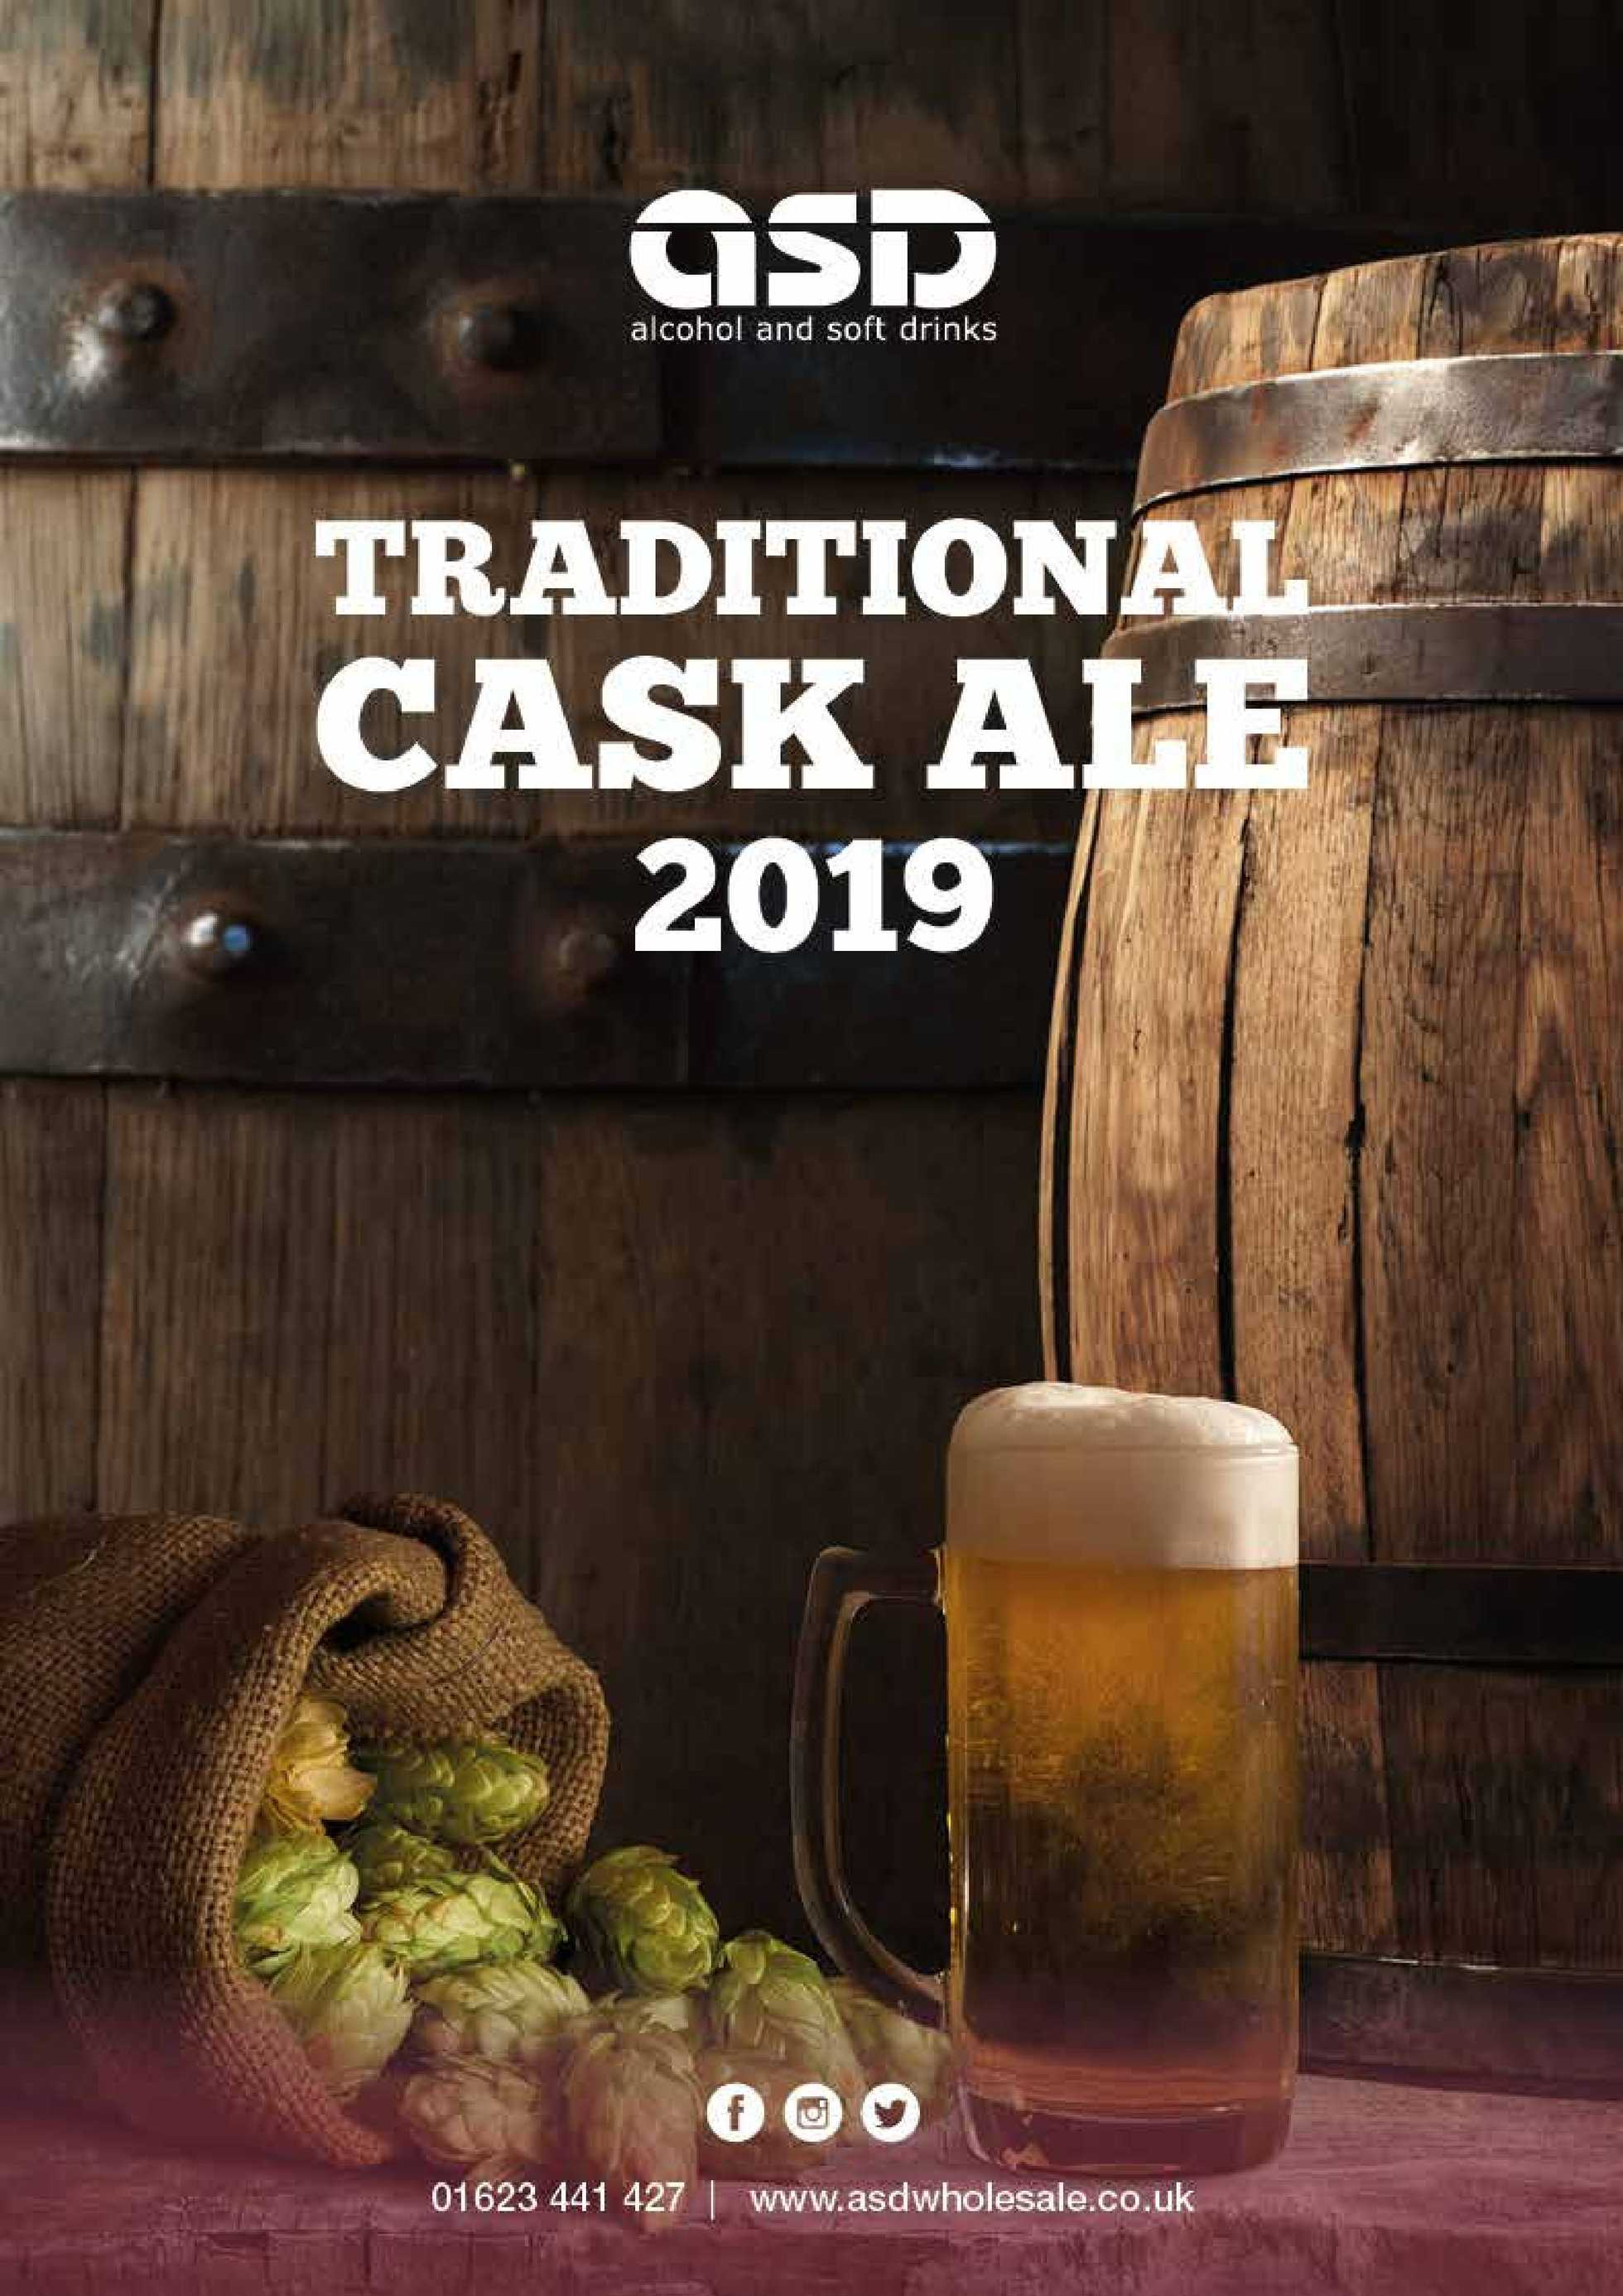 ASD Wholesale - promo starting from 01.01.2019 to 31.12.2019 - page 1. The promotion includes ale, alcohol